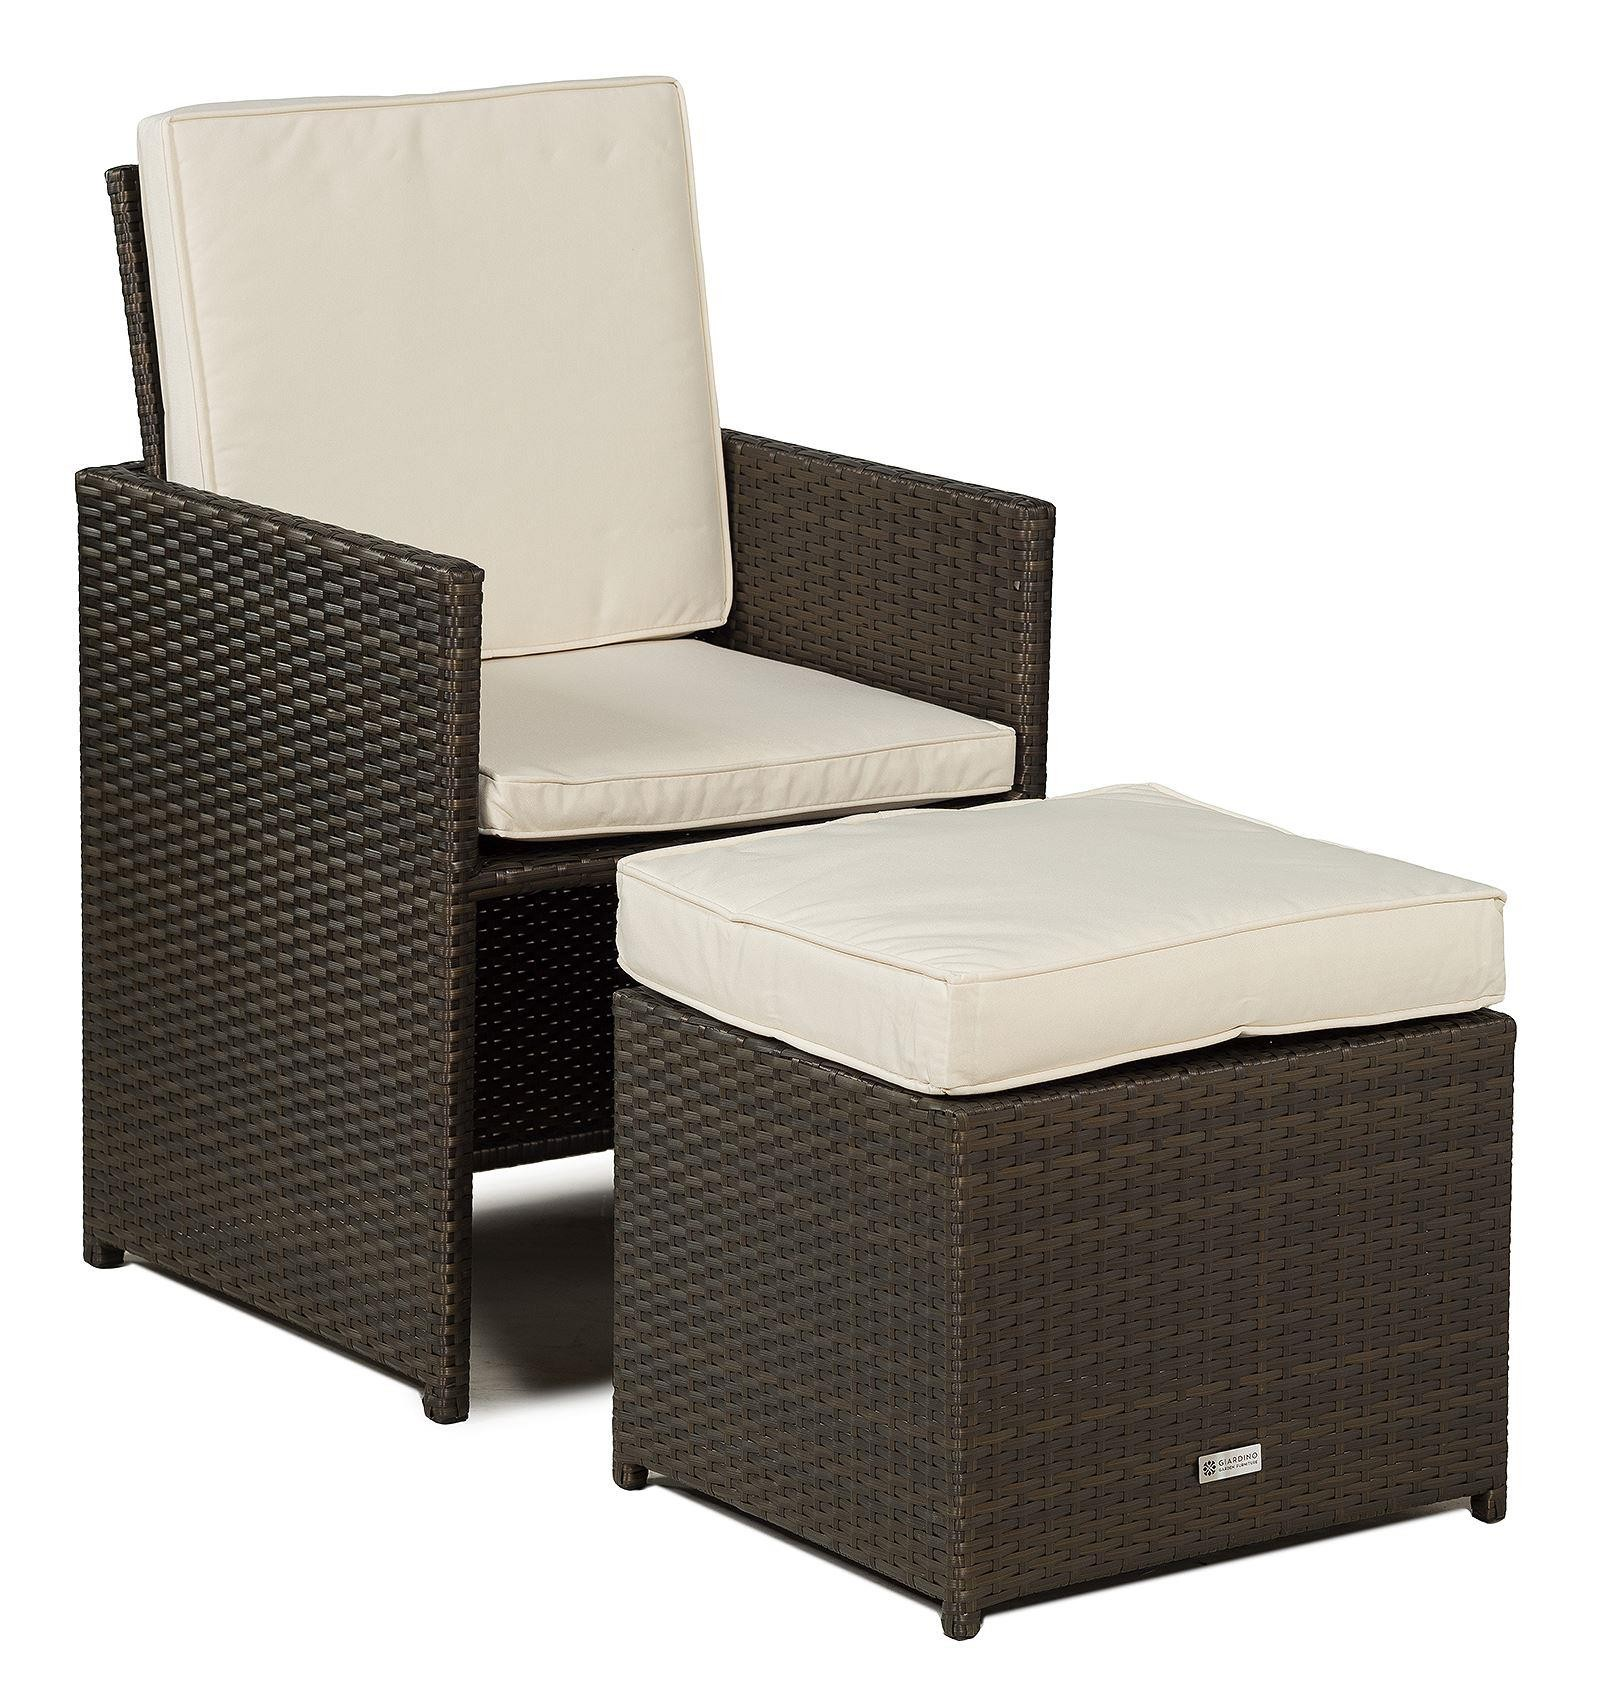 Set Giardino In Rattan.Giardino Rattan Garden Furniture 4 Seat Cube Dining Set